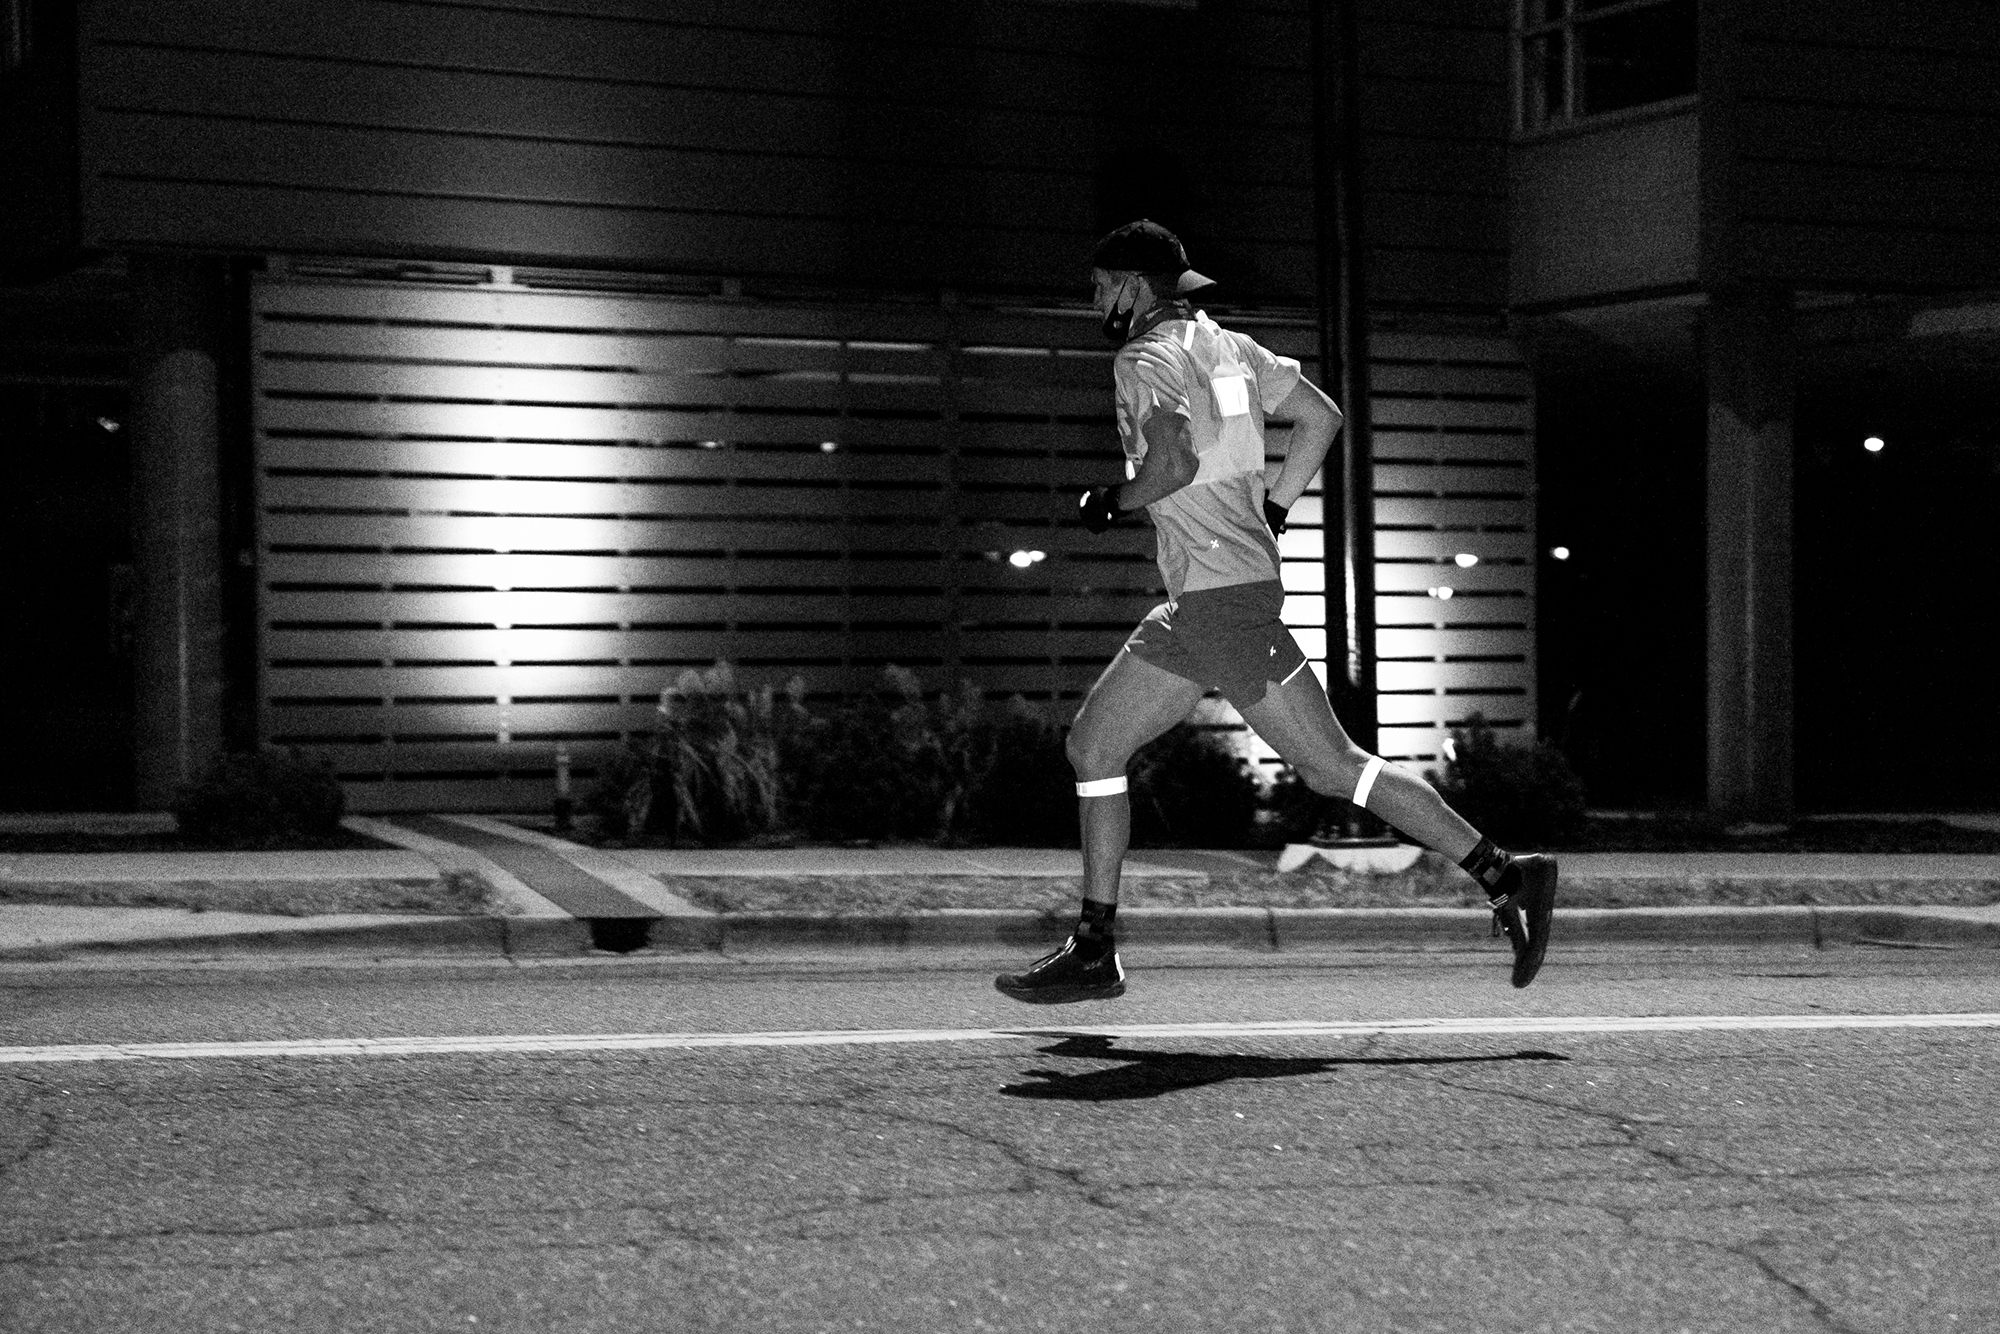 Matt Trappe photographs a runner in the dark while hes still in the air for TTB